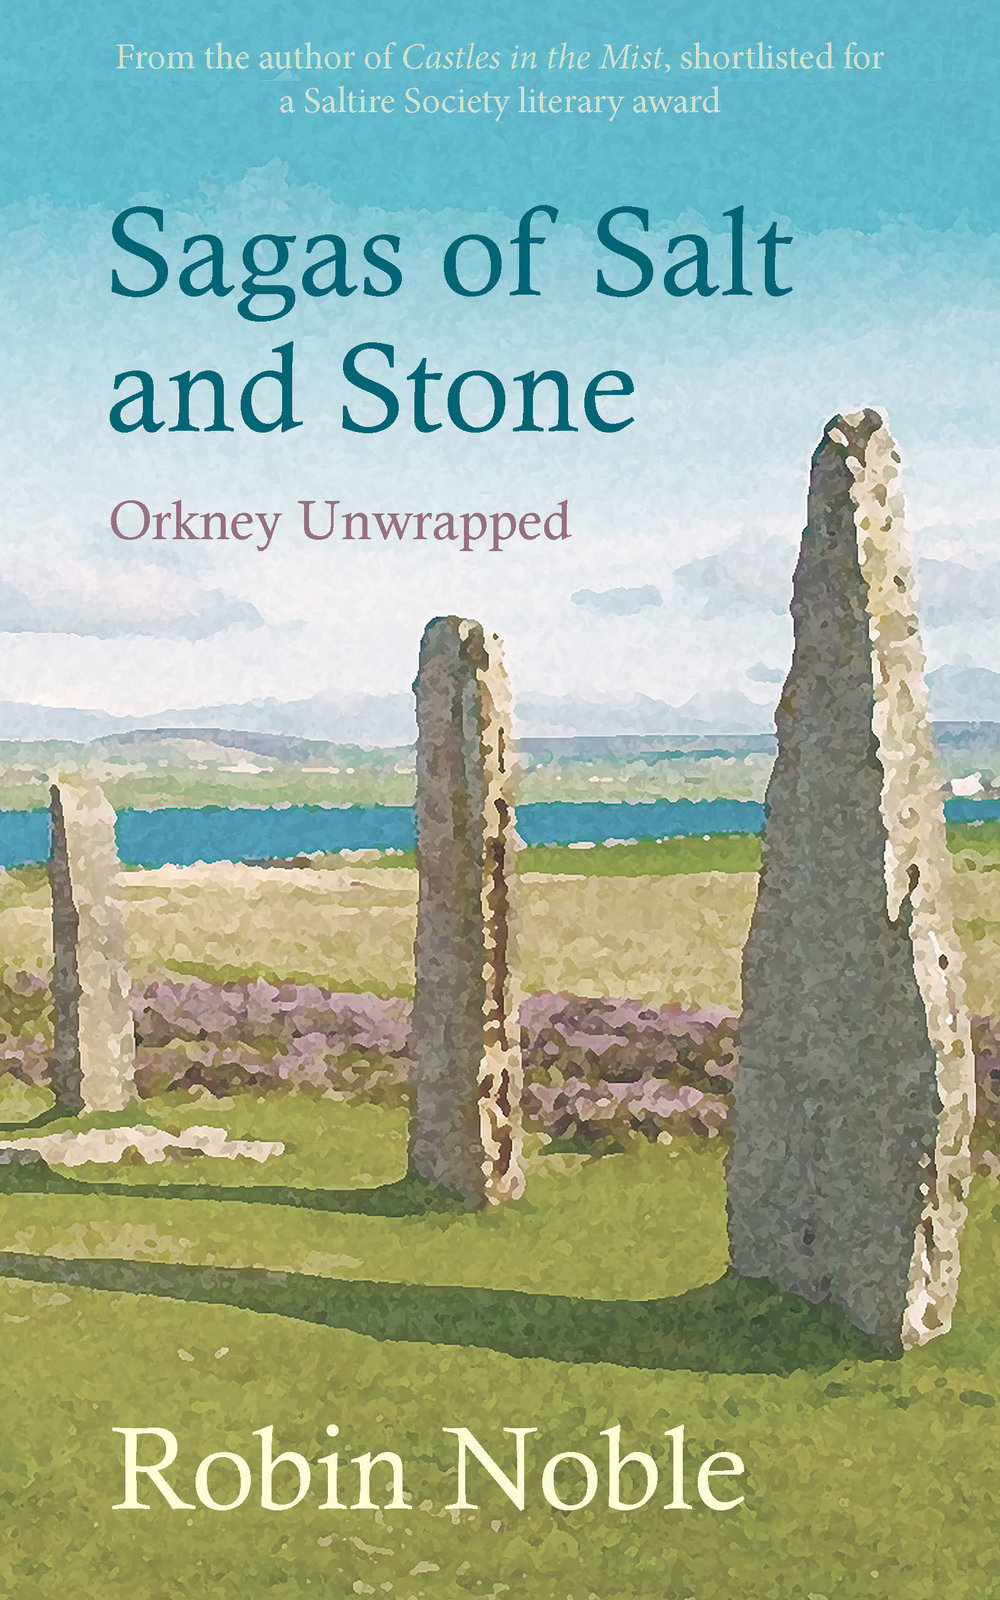 Sagas of Salt and Sone Cover Robin Noble Orkney